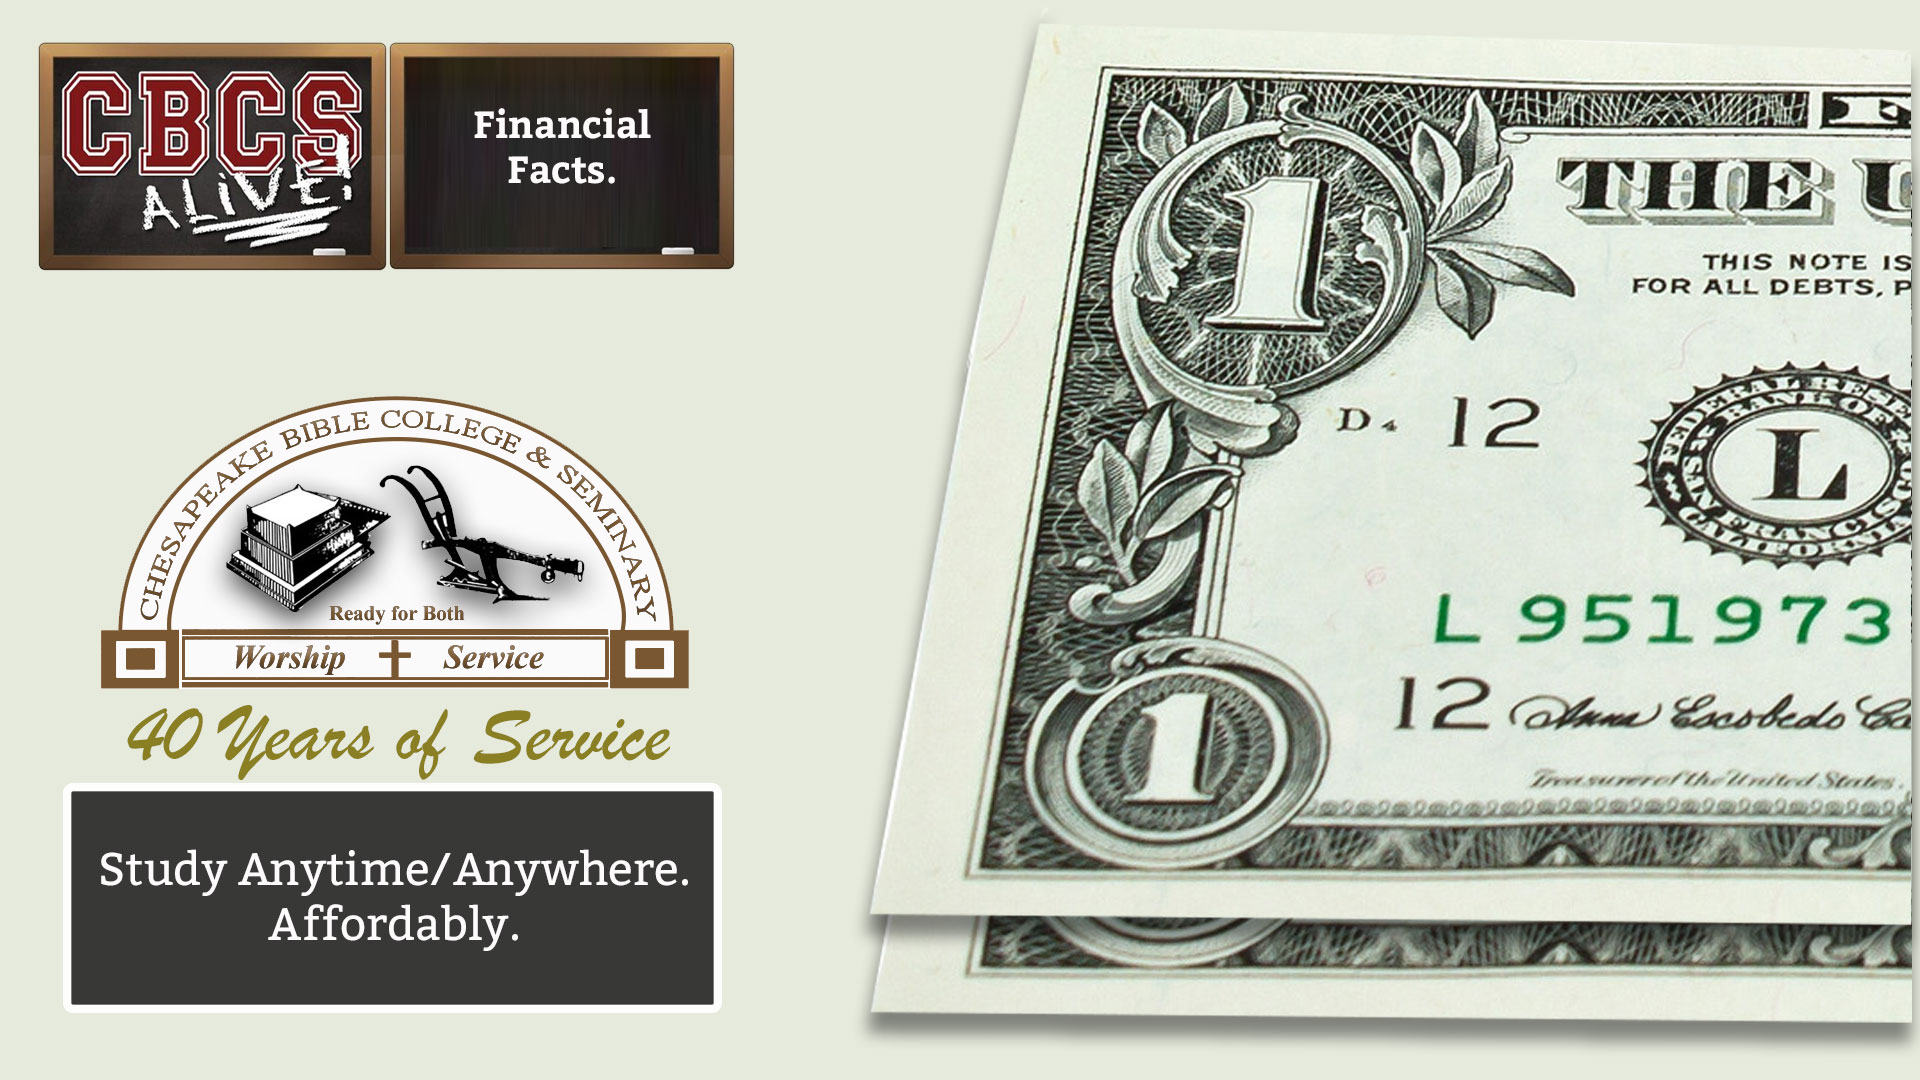 Chesapeake Bible College & Seminary Financial Facts